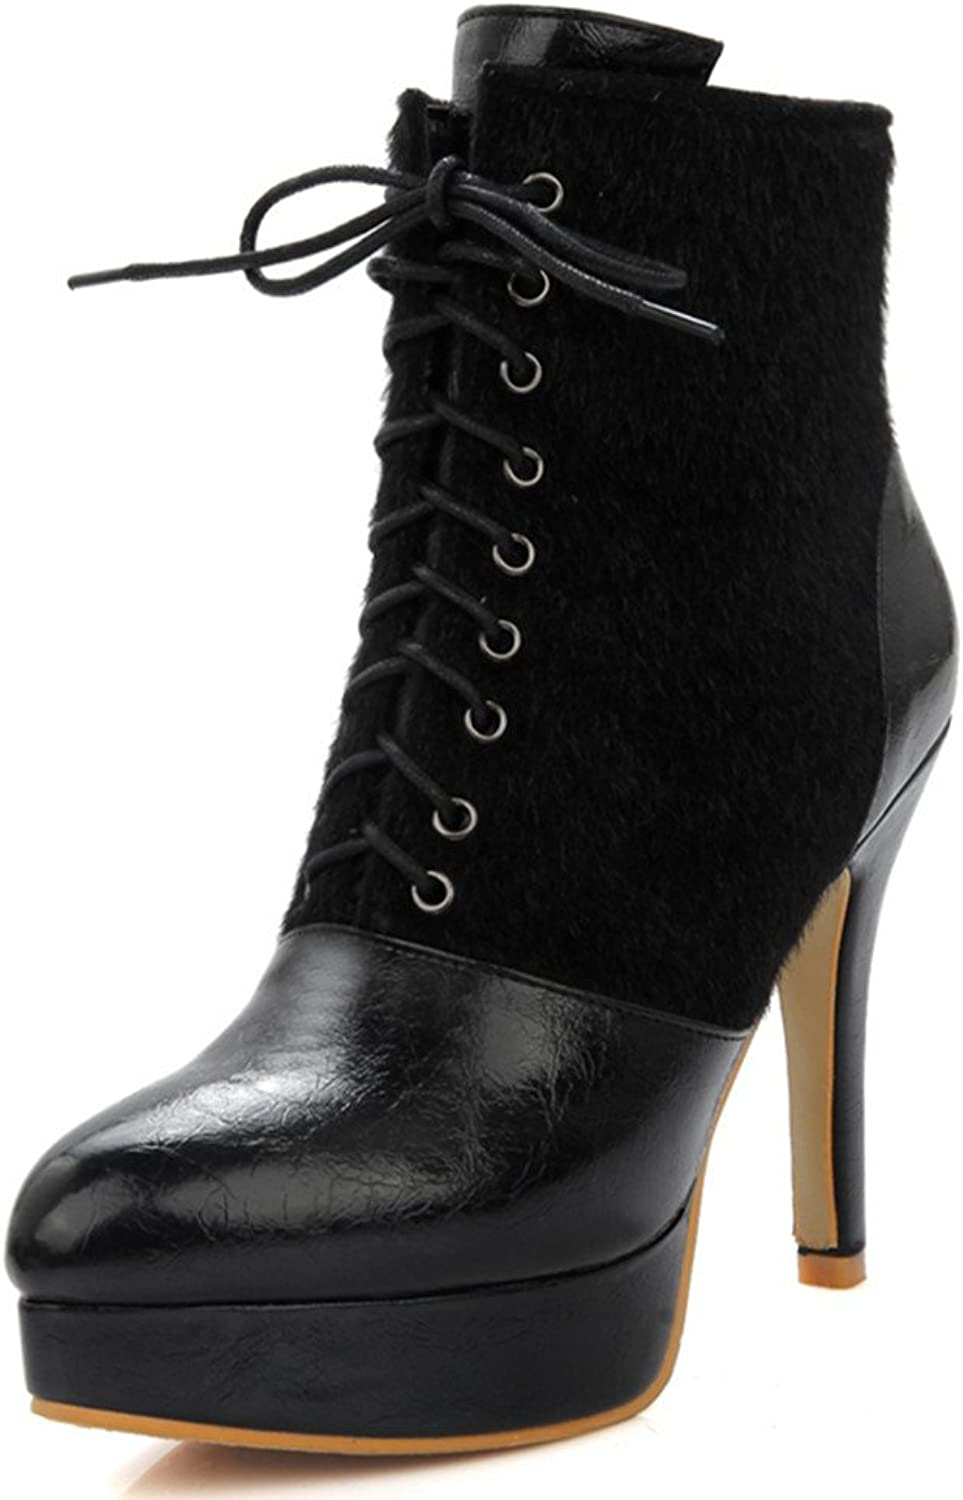 Fashion Heel Women's Stiletto Heel Pointed Toe Platform Lace Up Ankle Bootie